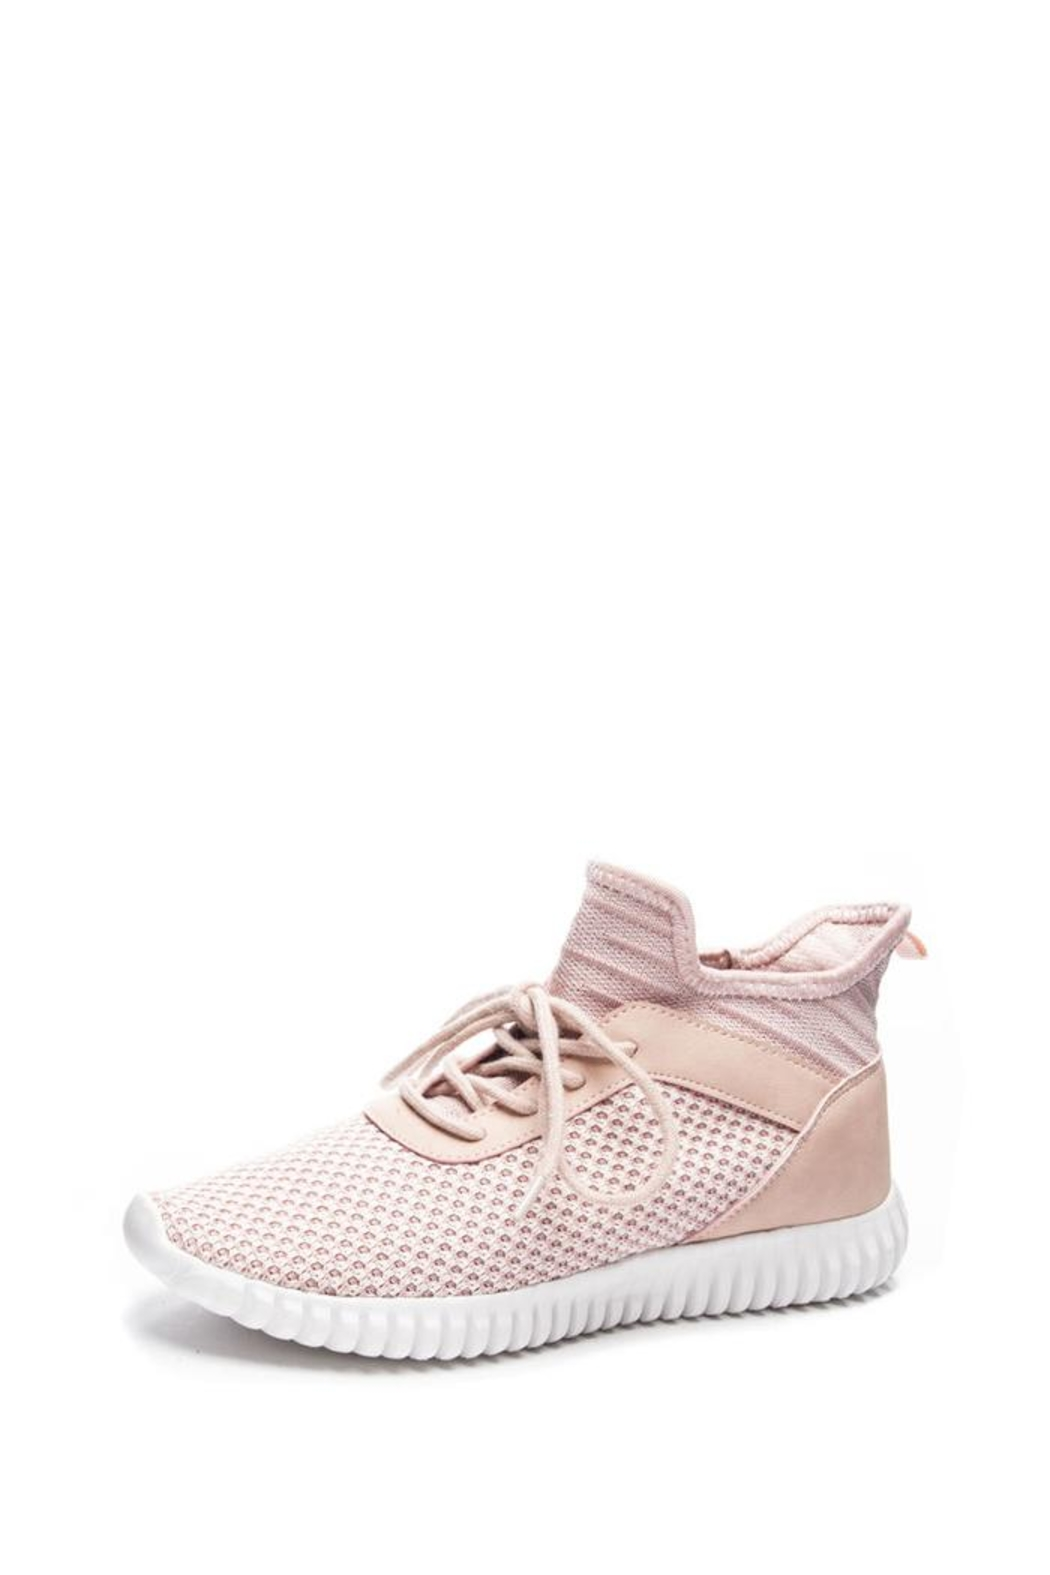 Dirty Laundry Harlen Blush Sneaker - Front Cropped Image